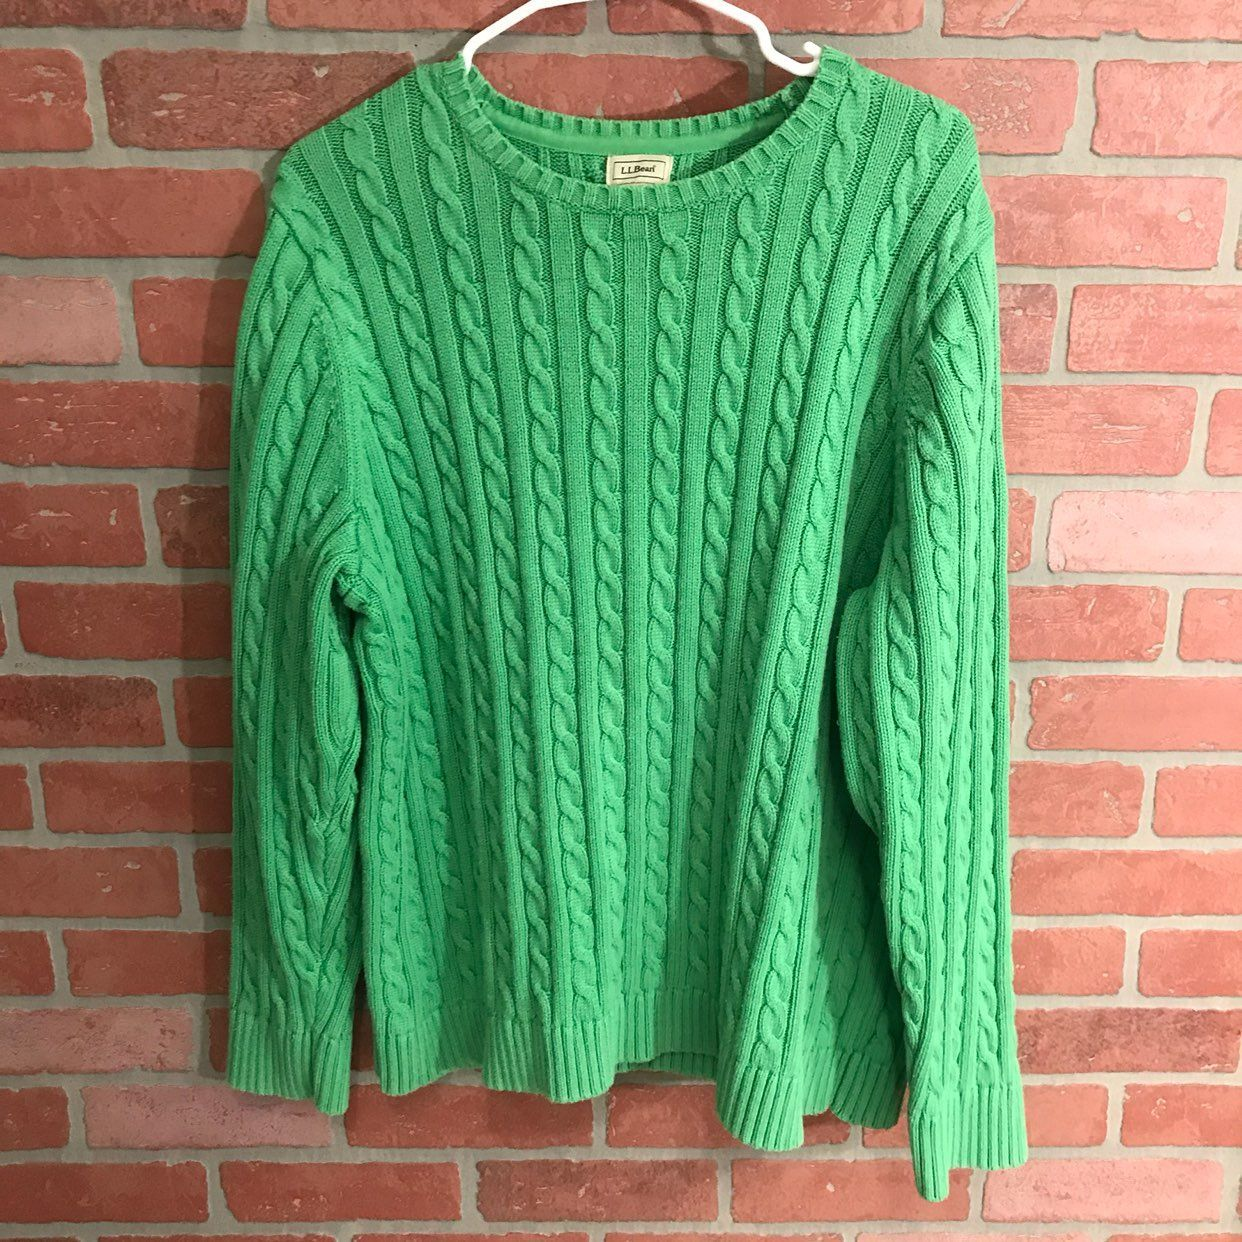 LL Bean Cable Knit Sweater - Mercari: BUY & SELL THINGS YOU LOVE